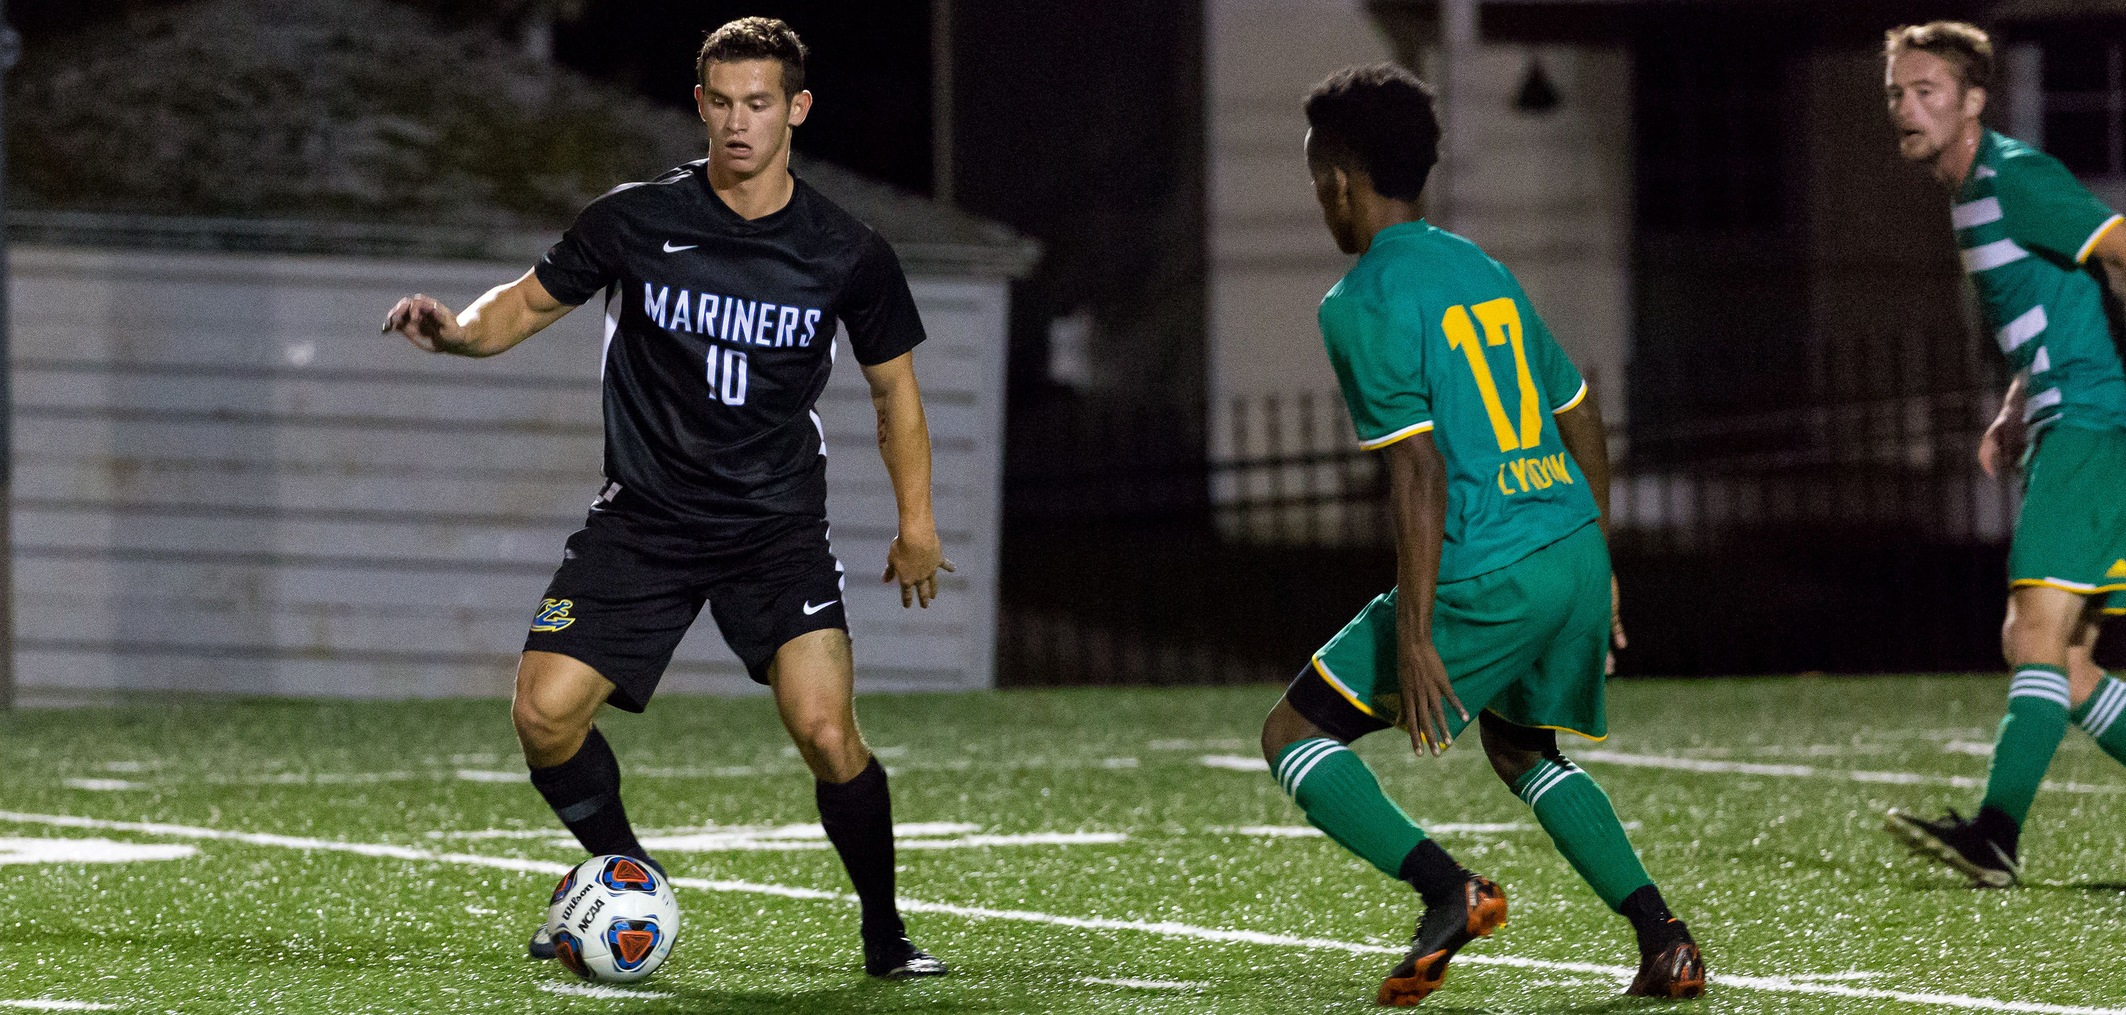 Caron's Hat Trick Leads Men's Soccer Over Unity